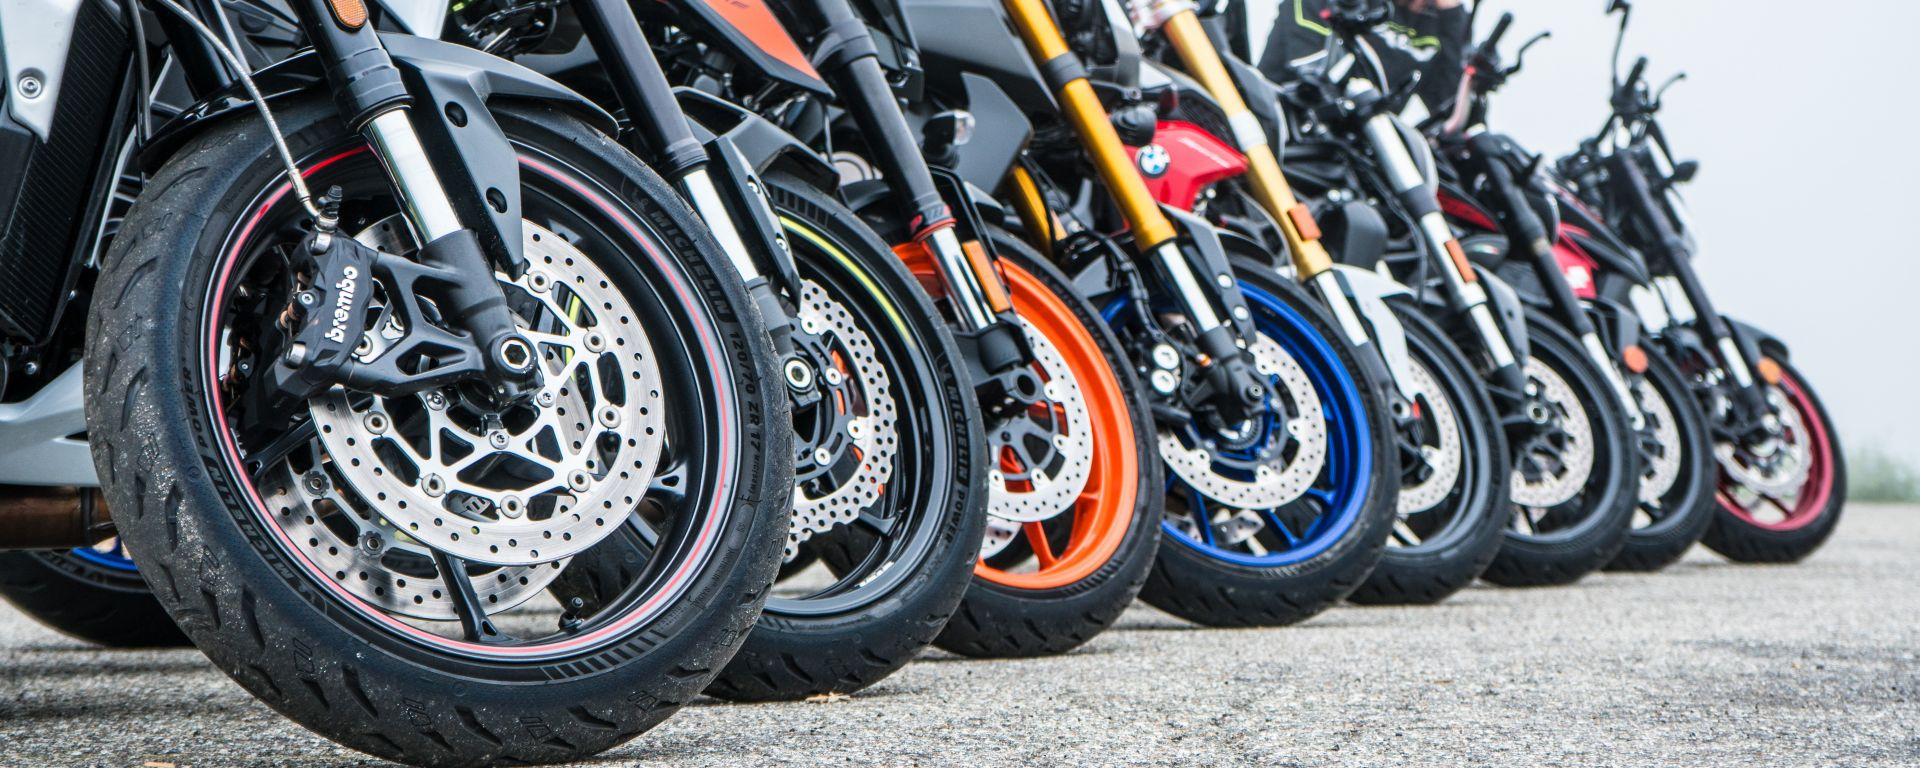 Maxi comparativa naked medie: tutte le moto montano gomme Michelin Power 5